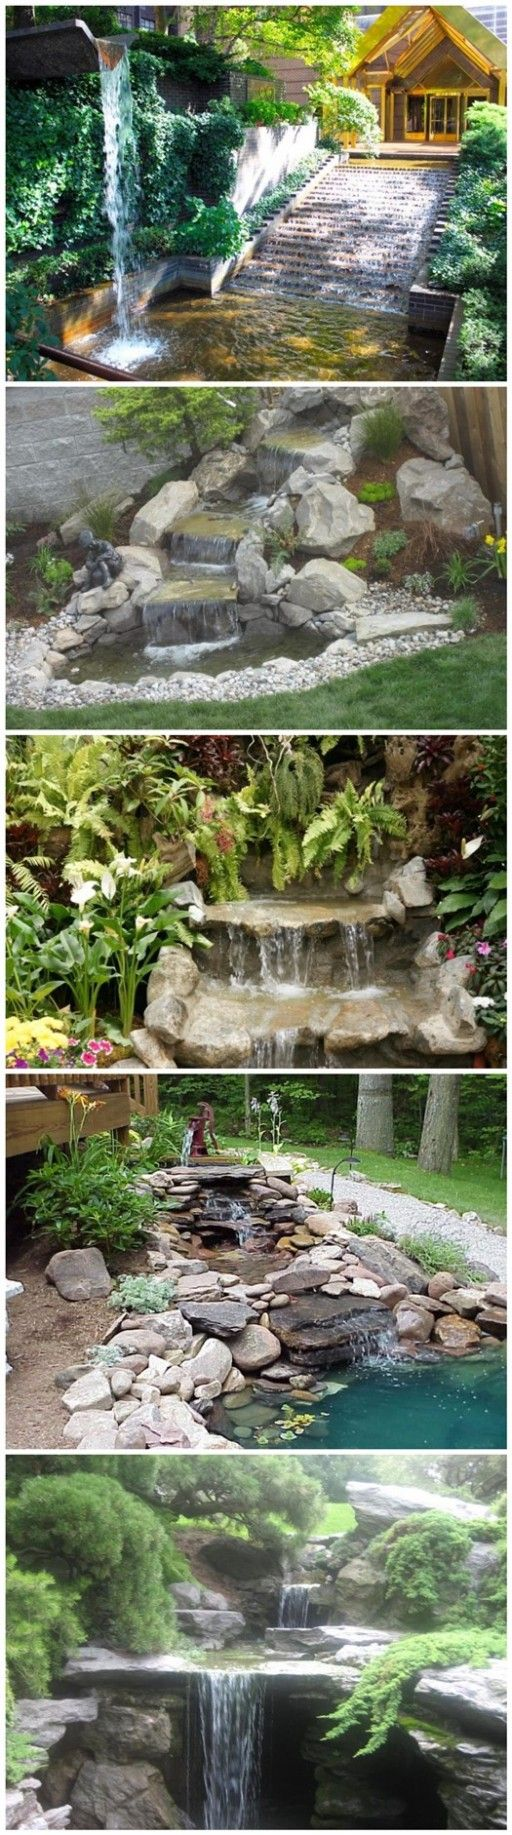 How to build a garden waterfall pond diy tag ponds - How to build a swimming pool waterfall ...